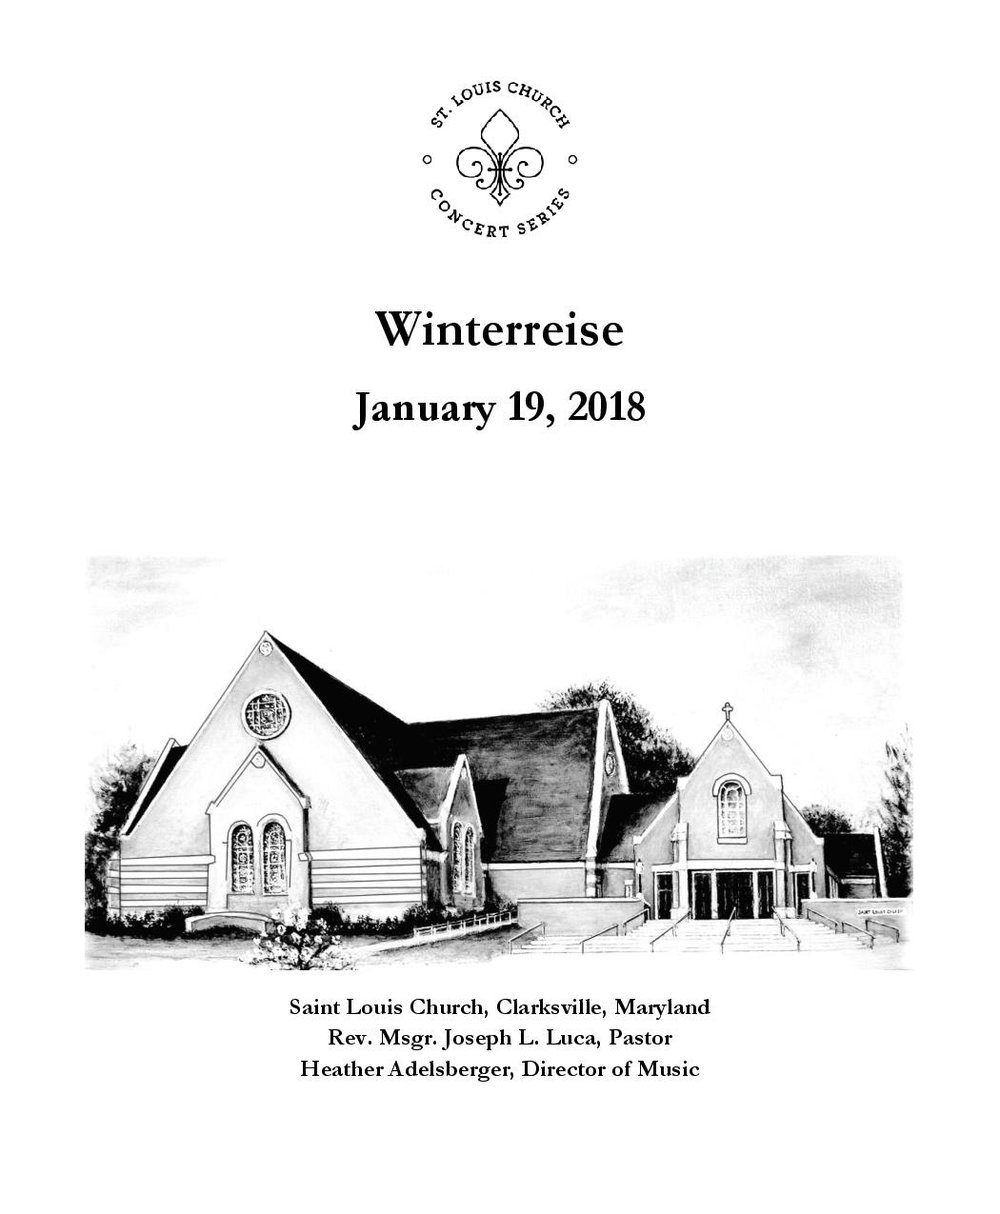 WinterreiseProgram_FINAL-page-001.jpg